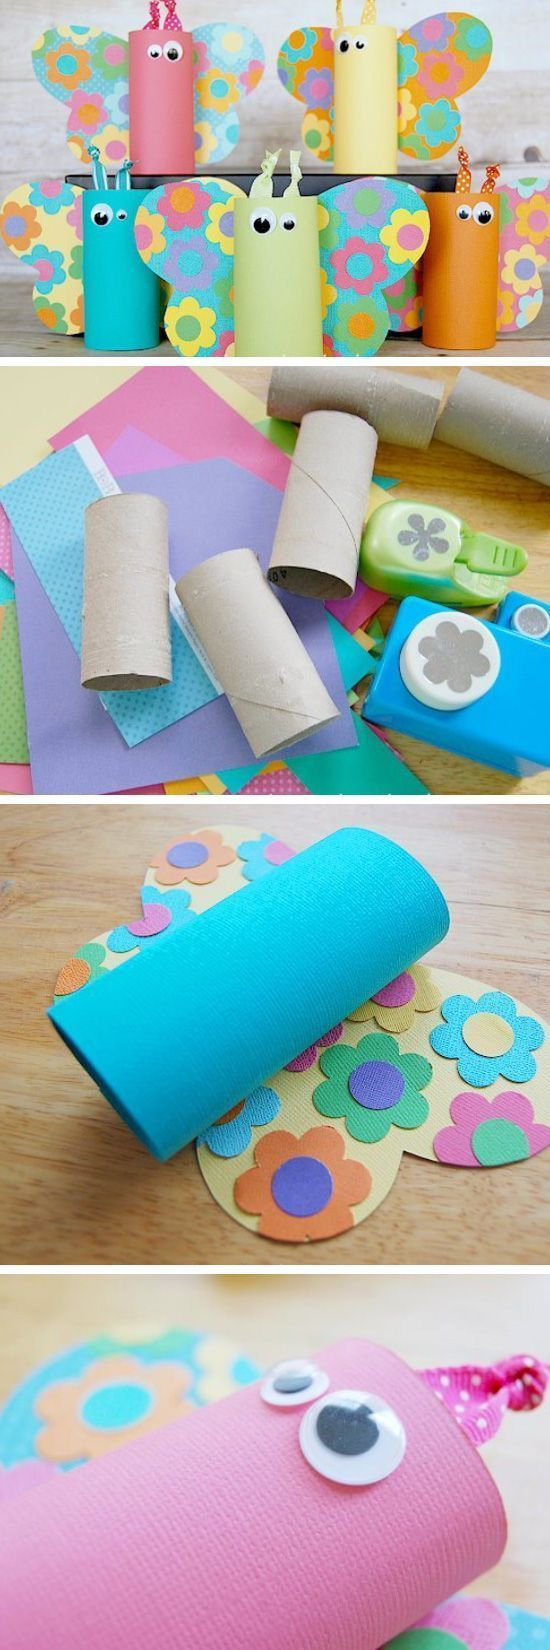 22 DIY Spring Crafts for Kids to Make